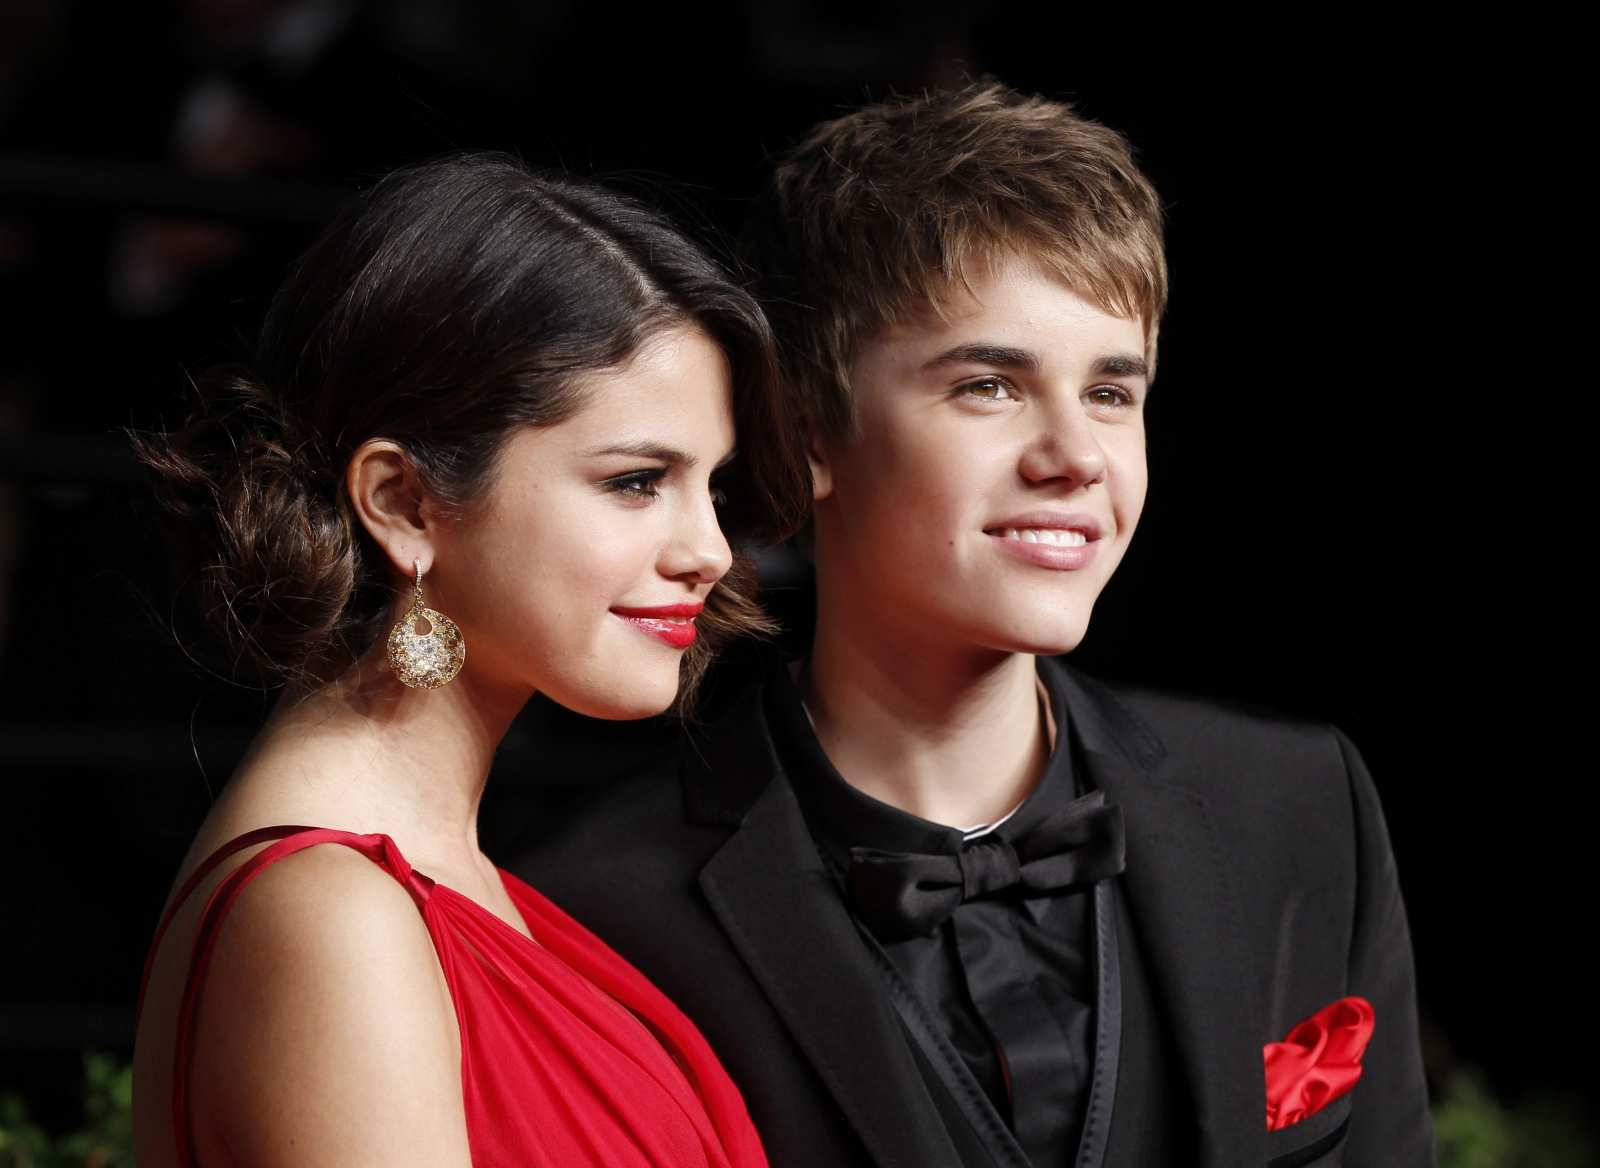 is selena gomez dating justin bieber 2014 Selena gomez jets off to mexico without justin bieber to ring in 2018  selena  gomez photographed by steven klein w magazine march 2016  all planning  to do some fun dinners and spend new year's eve together.